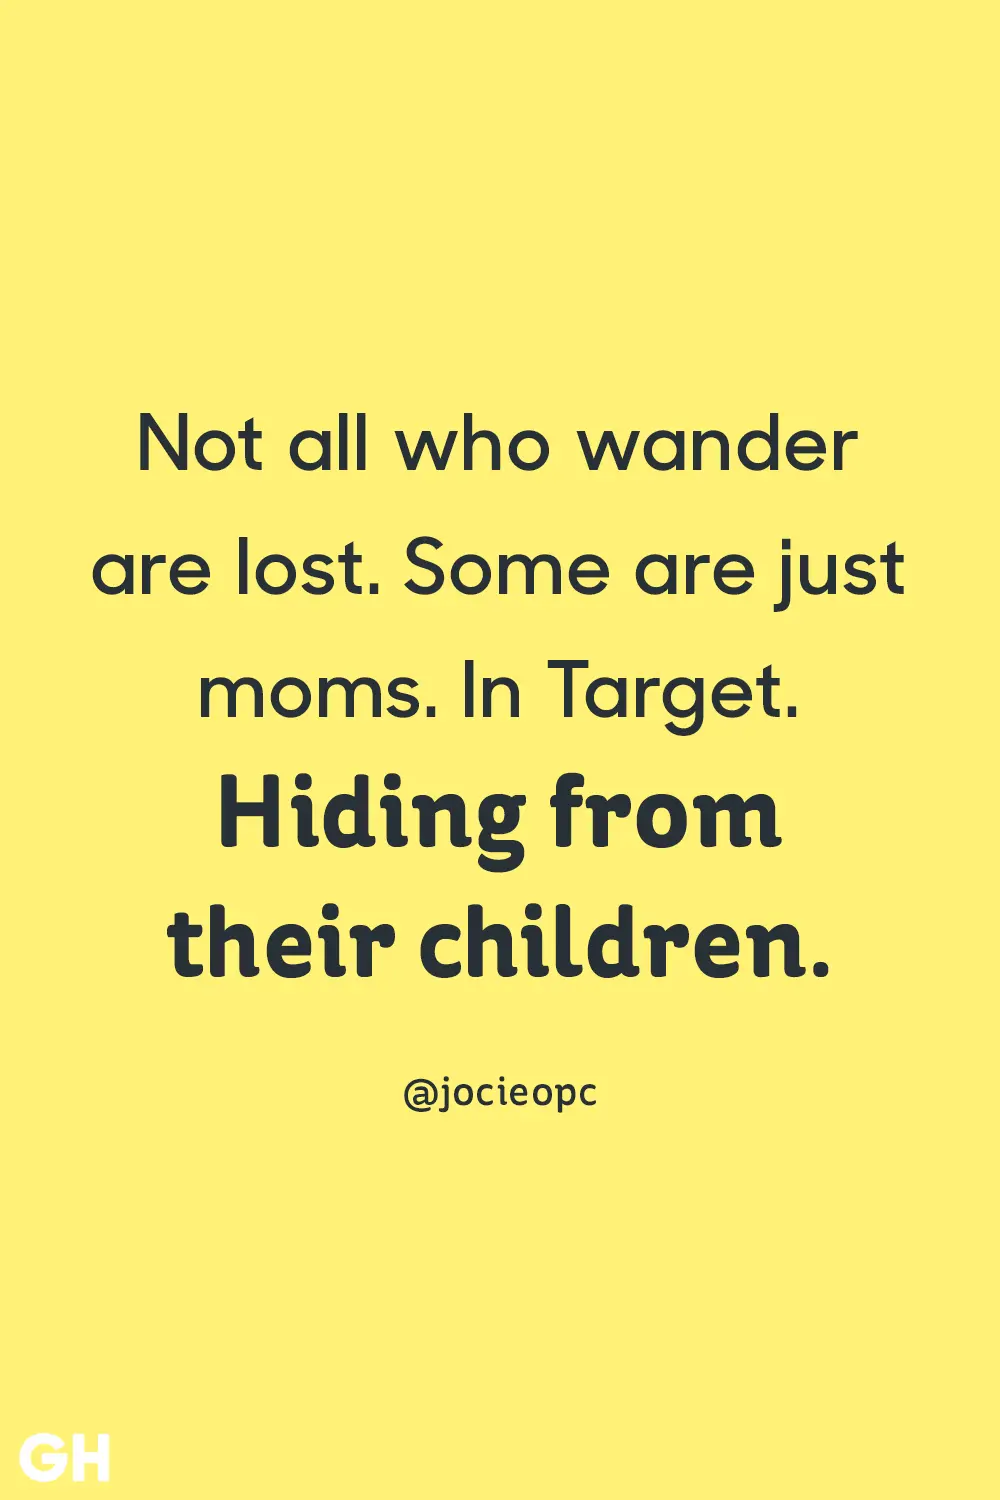 25 Funny Parenting Quotes - Hilarious Quotes About Being a Parent #notEnoughCoffee